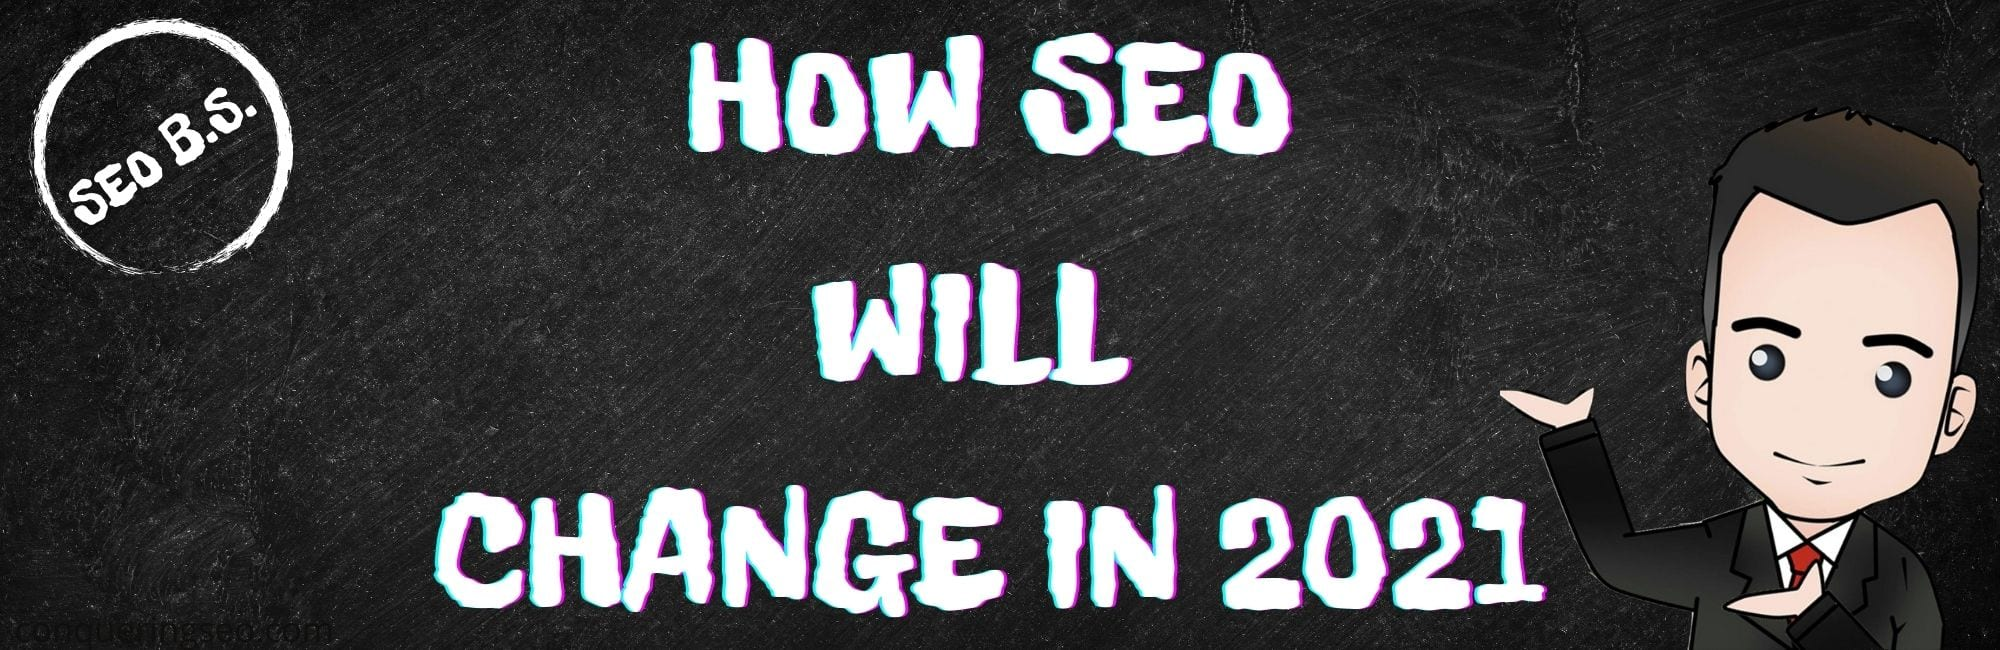 picture banner of How SEO Will Change in 2021